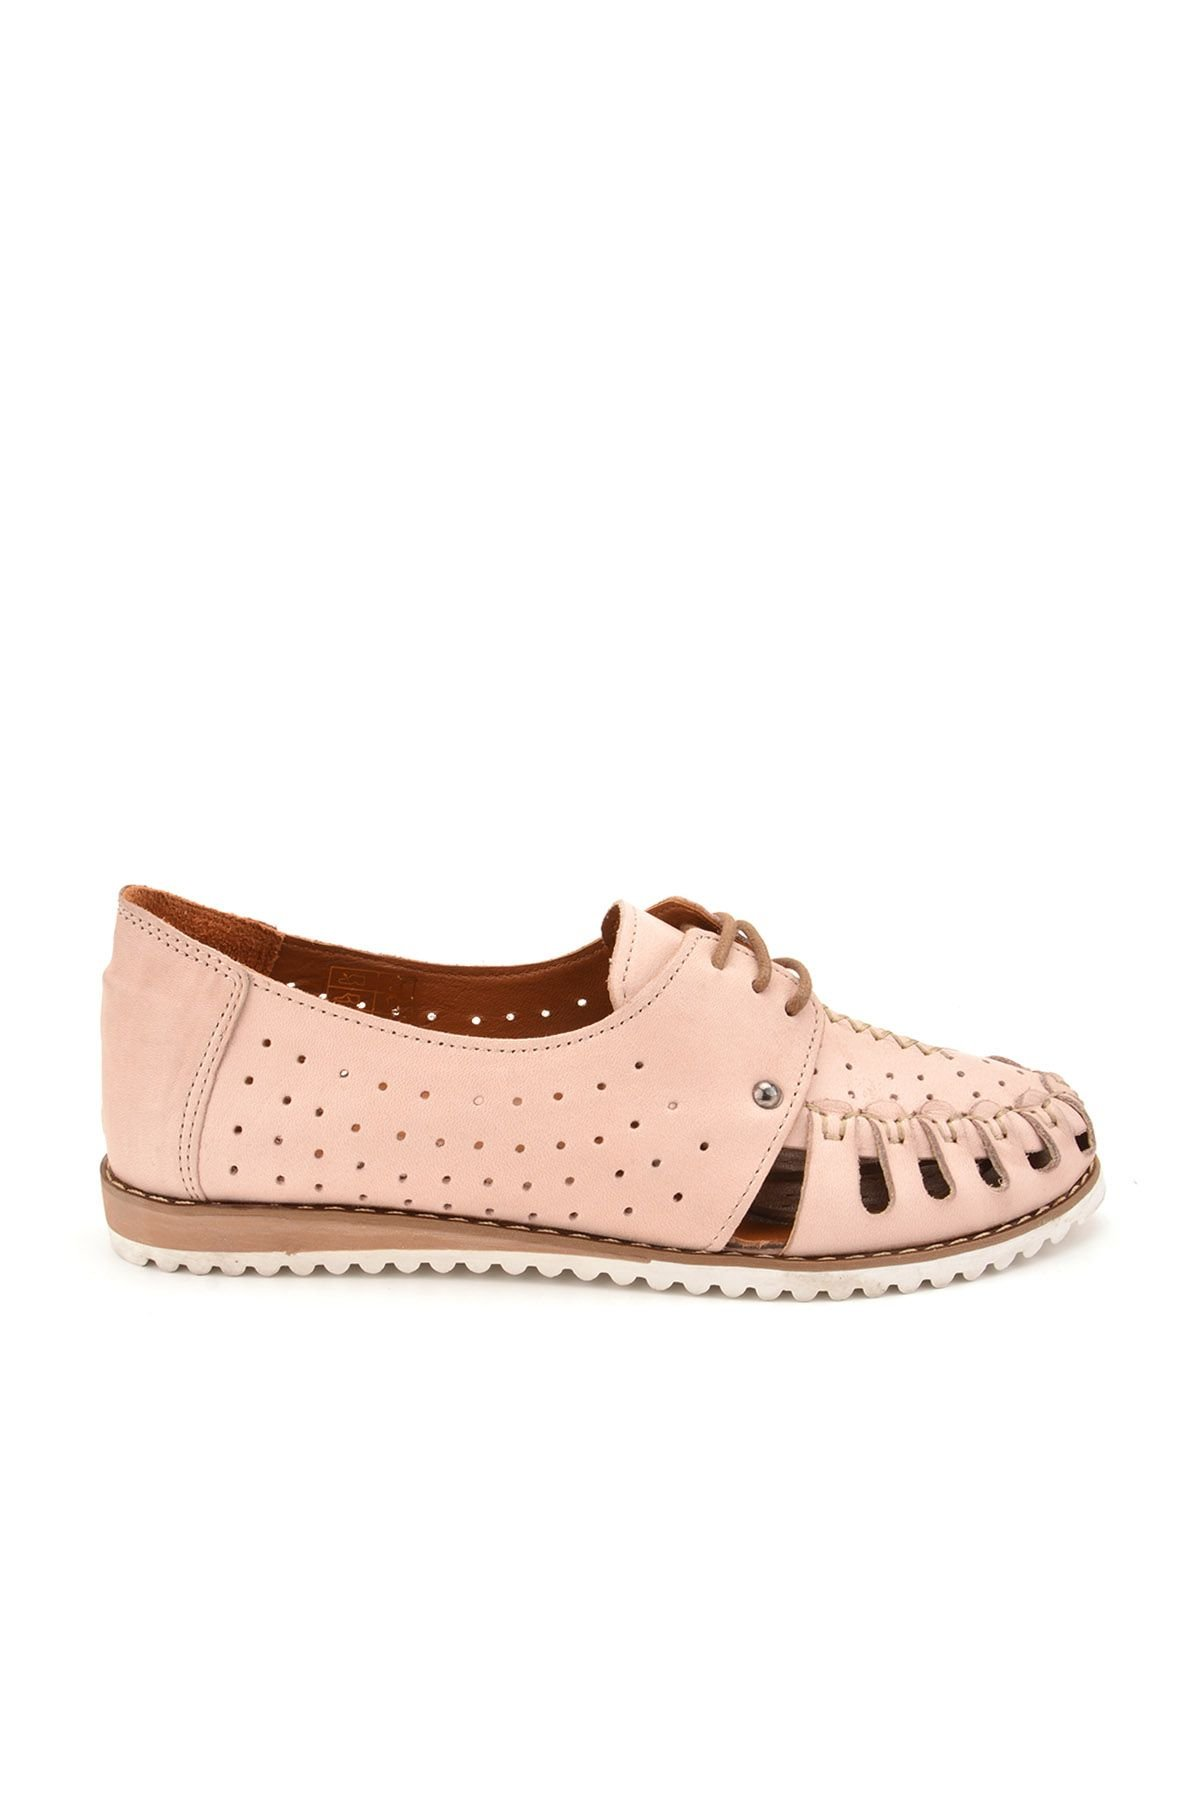 Pegia Lace Women Shoes From Genuine Leather Pink